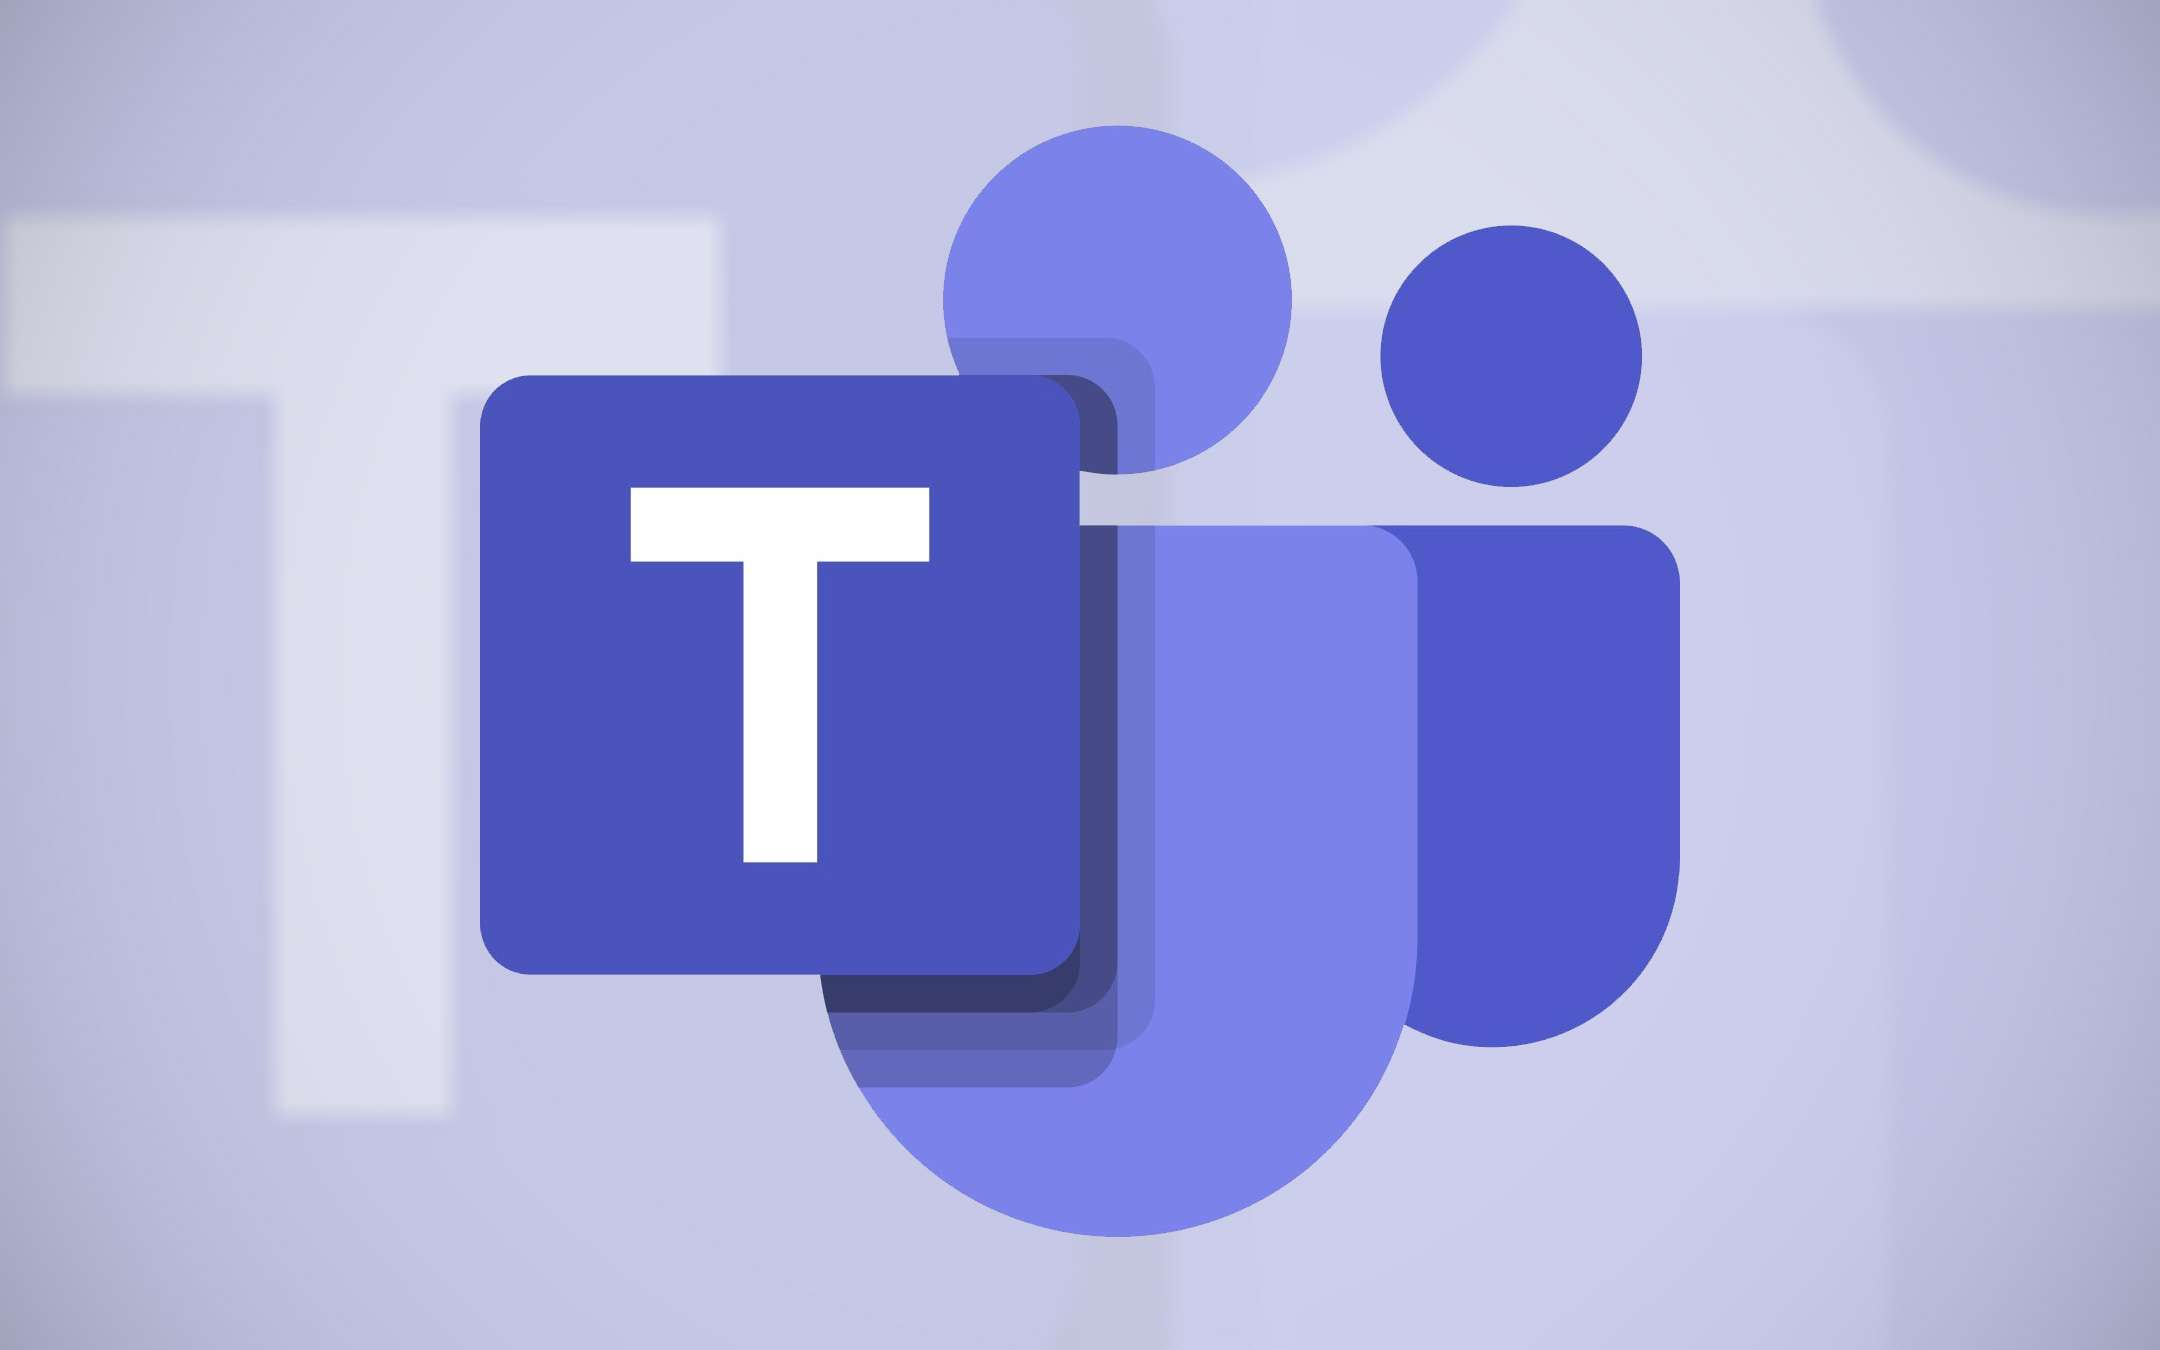 Teams: 115 million active users every day